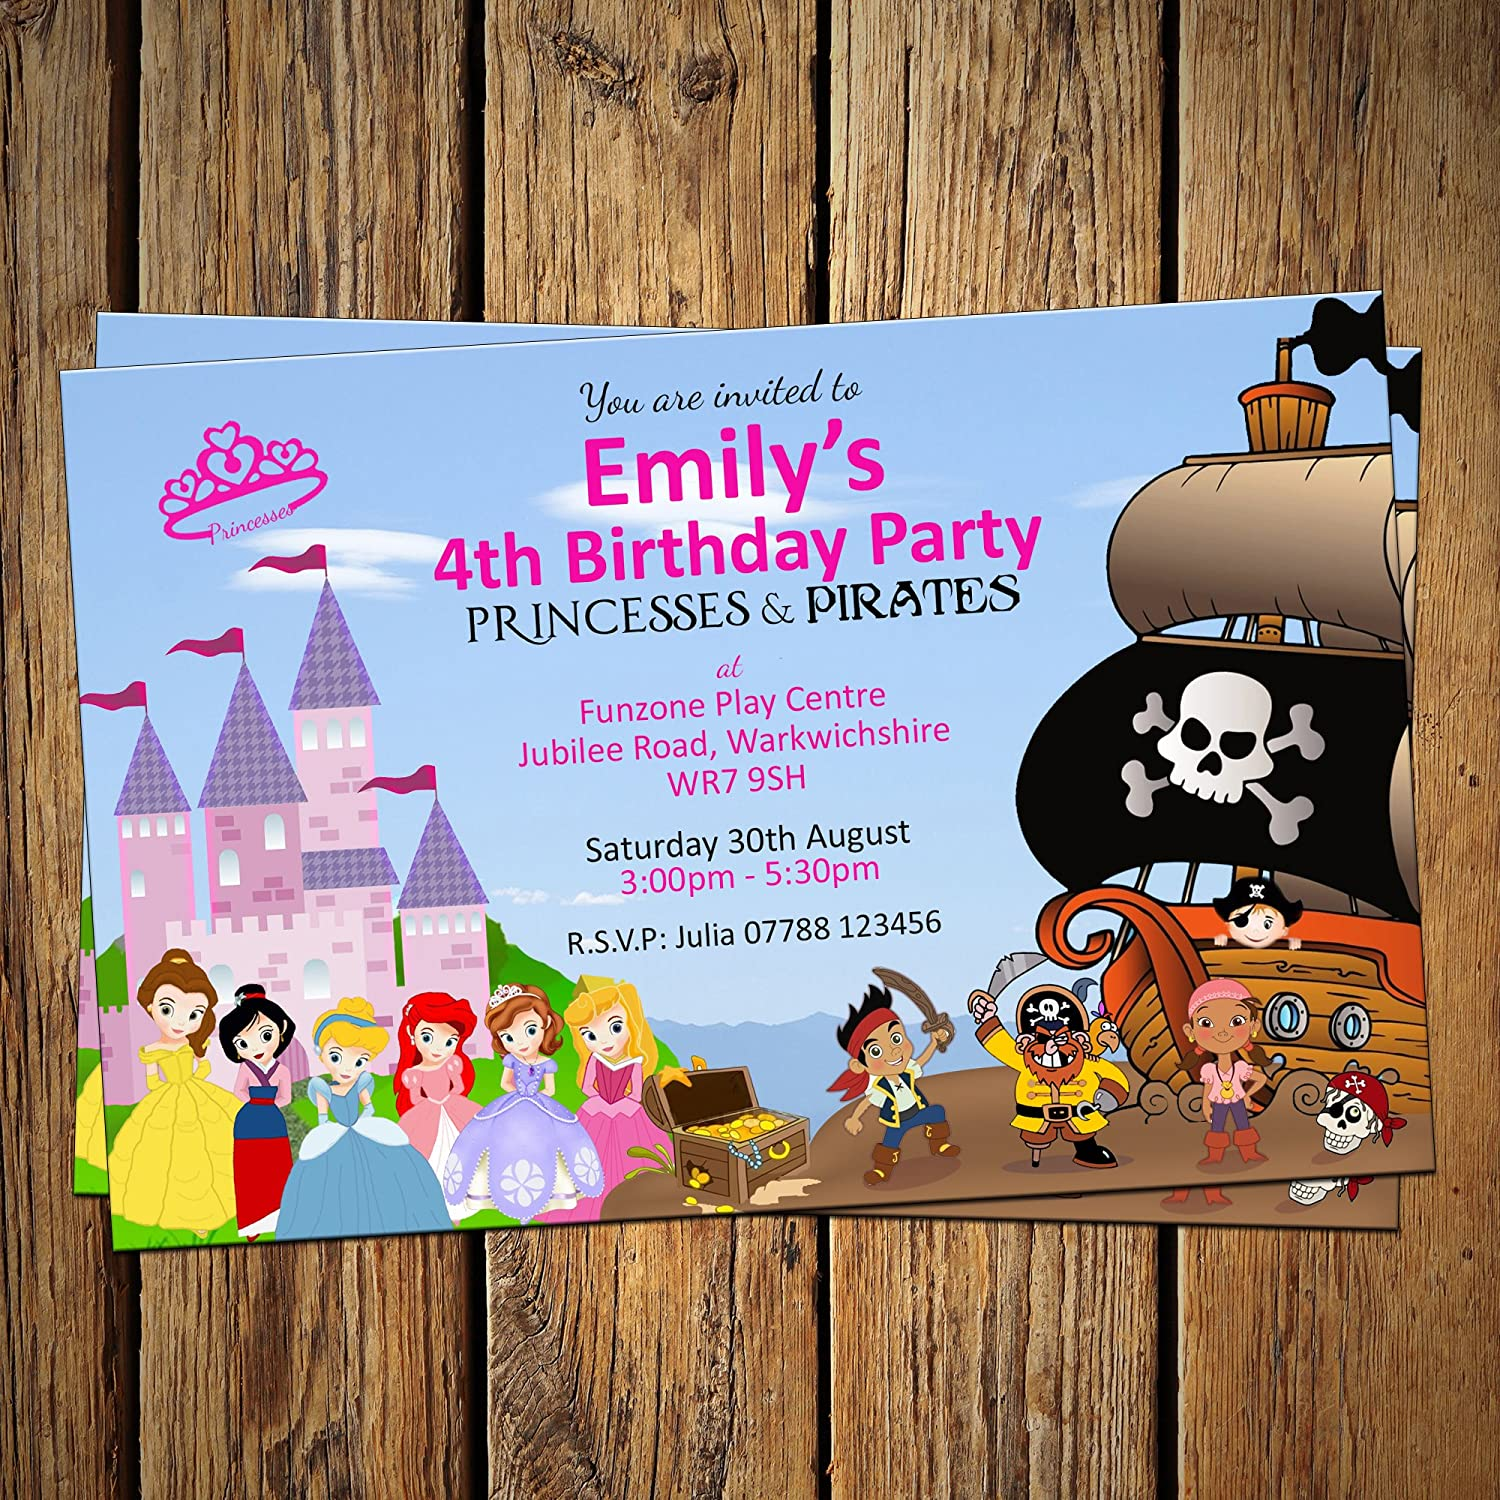 Princess Pirate Personalised Invitations Envelopes Pack of 20 – Personalised Party Invites